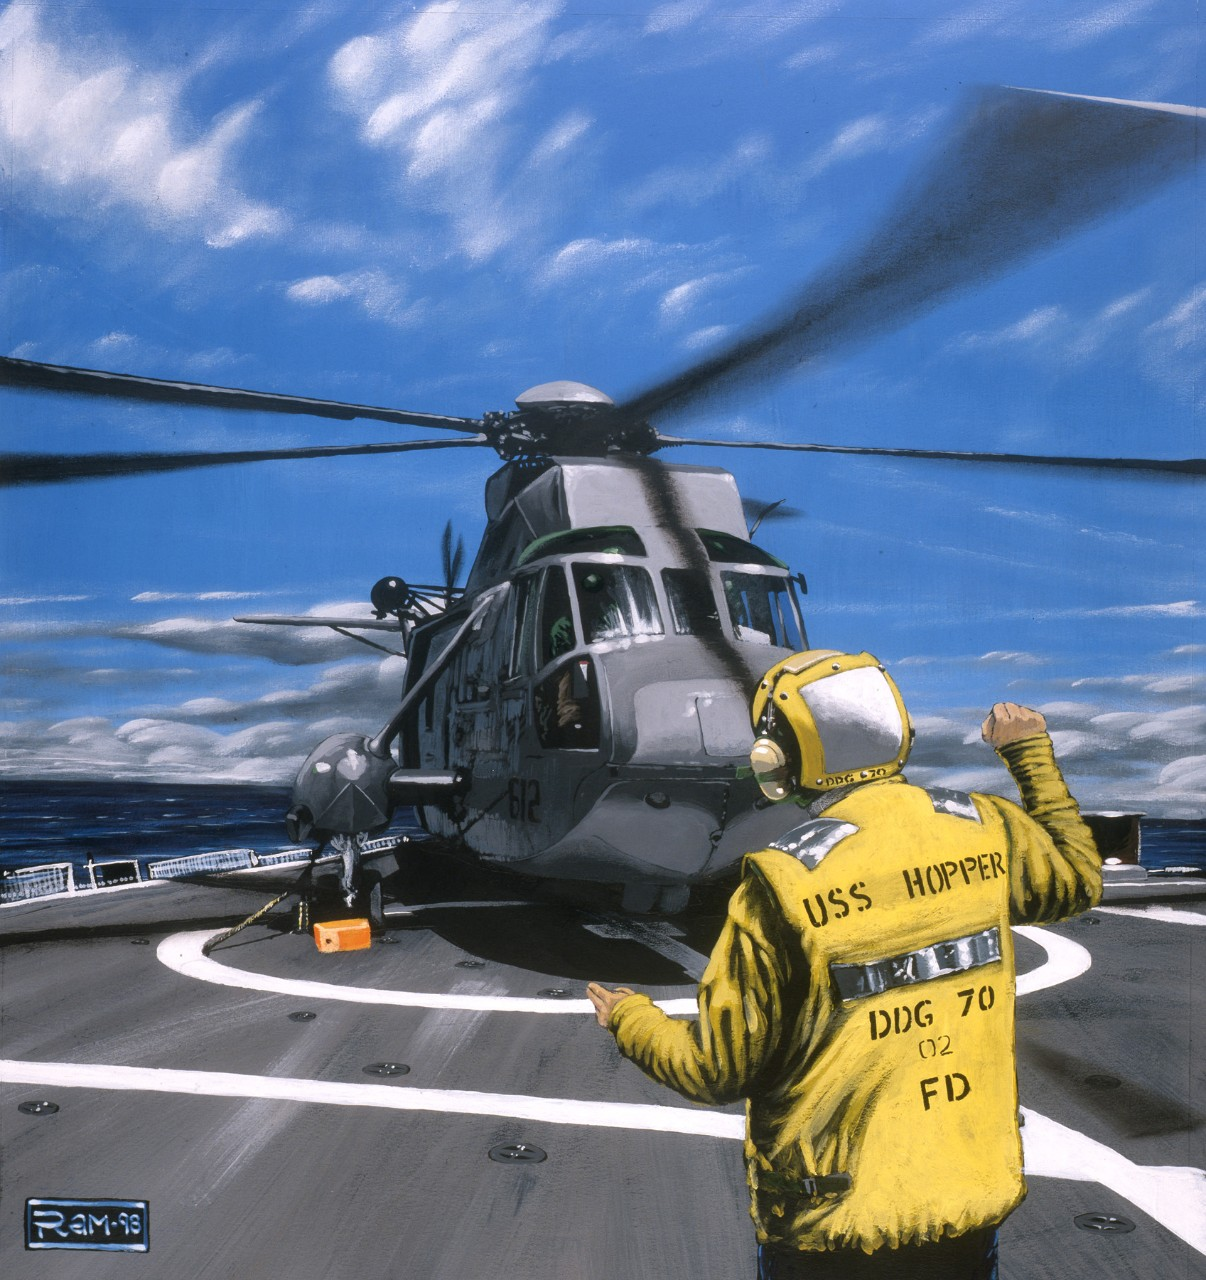 A crewman directs a helicopter on the landing pad